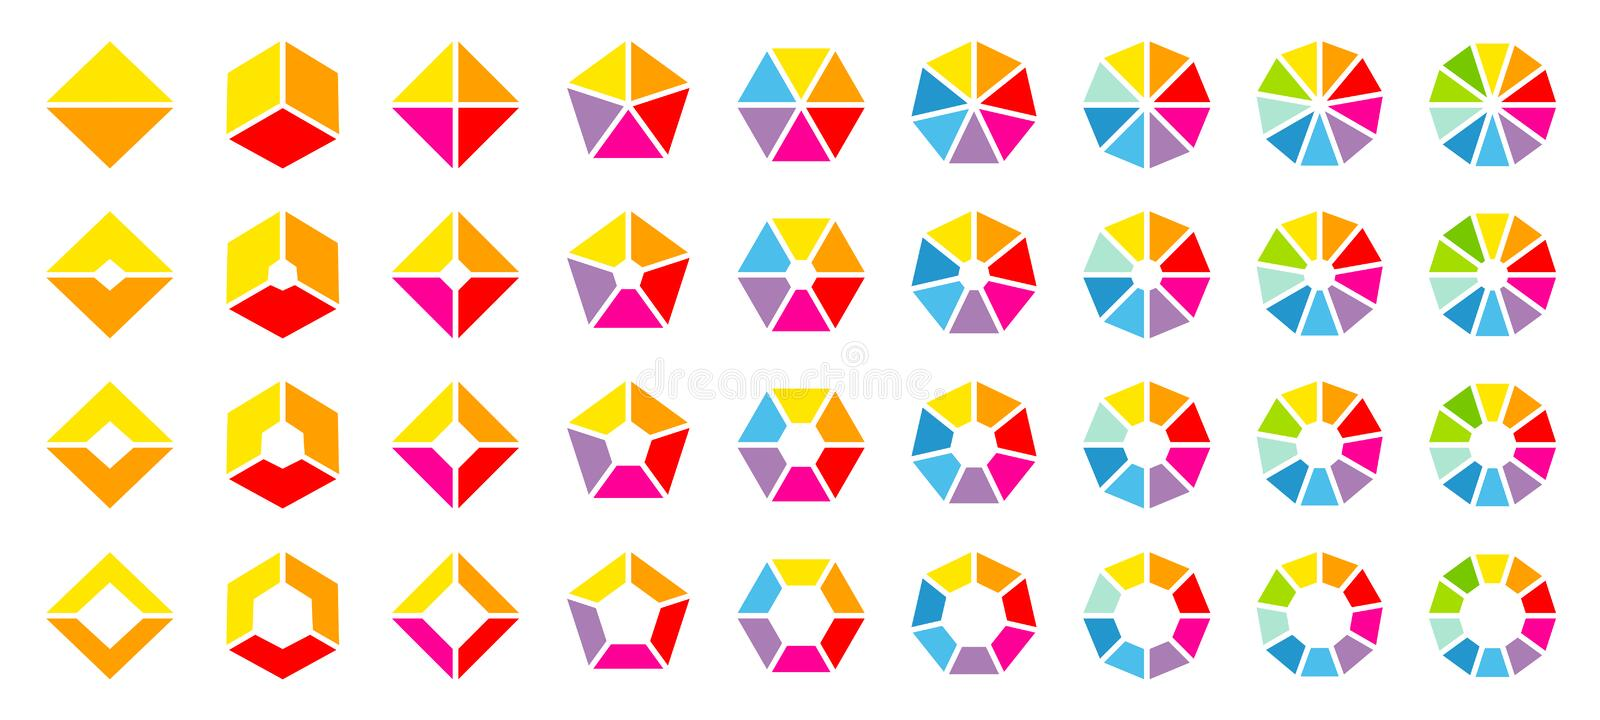 Set Of Different Colorful Angled Pie Charts royalty free illustration